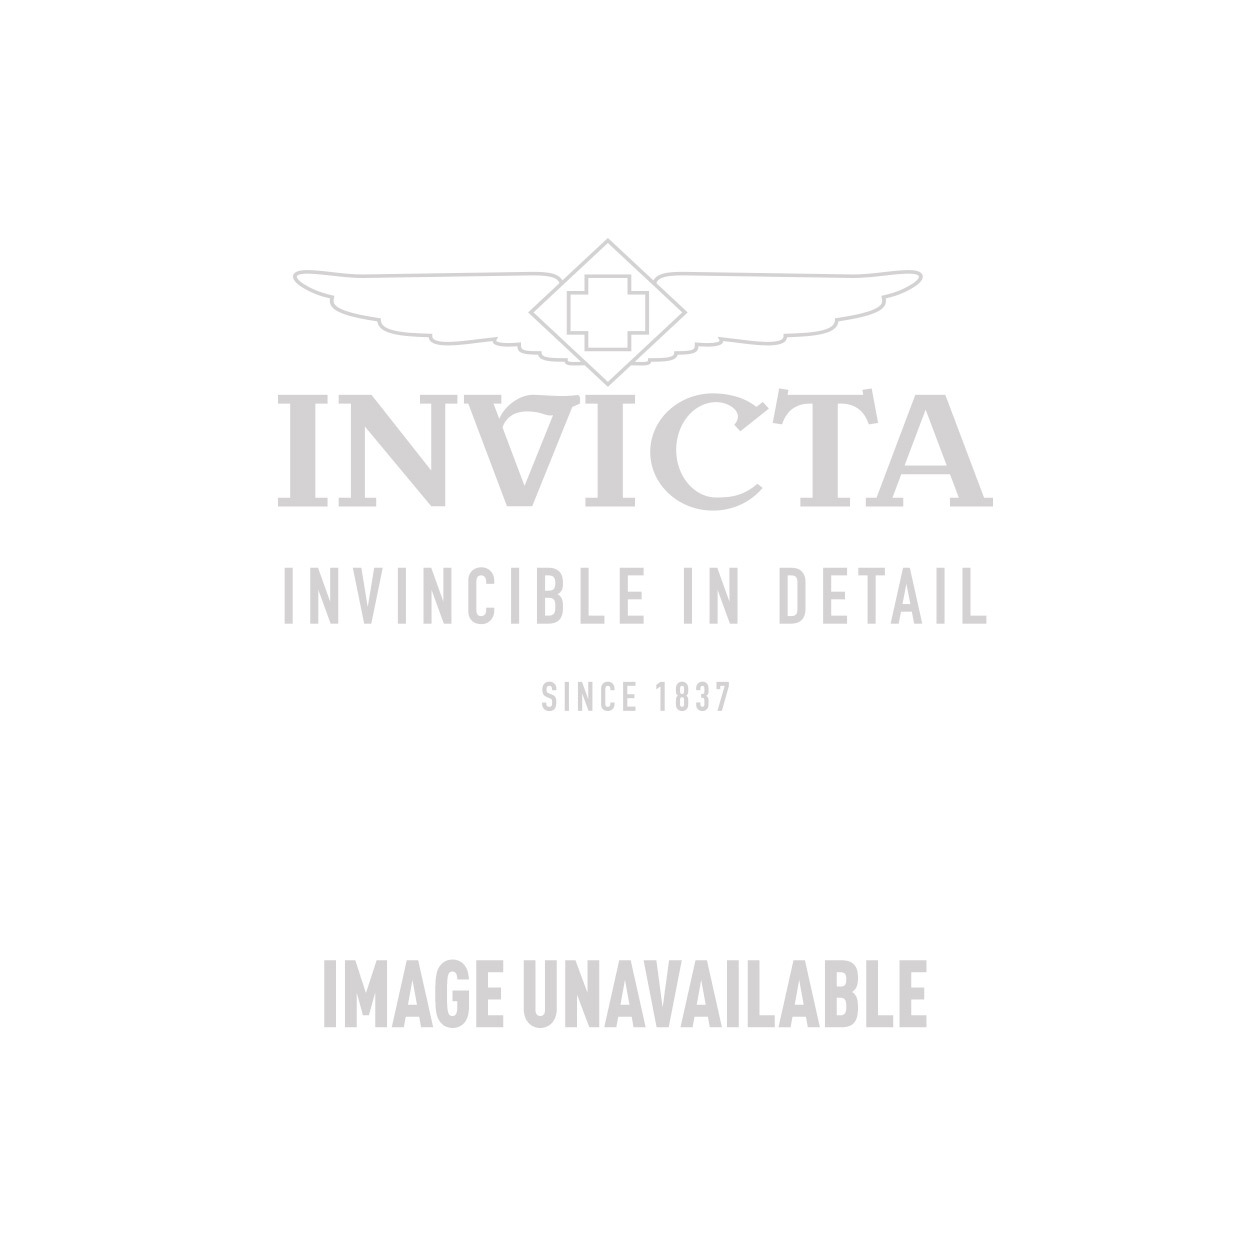 Invicta Coalition Forces Swiss Made Quartz Watch - Gold case Stainless Steel band - Model 13074